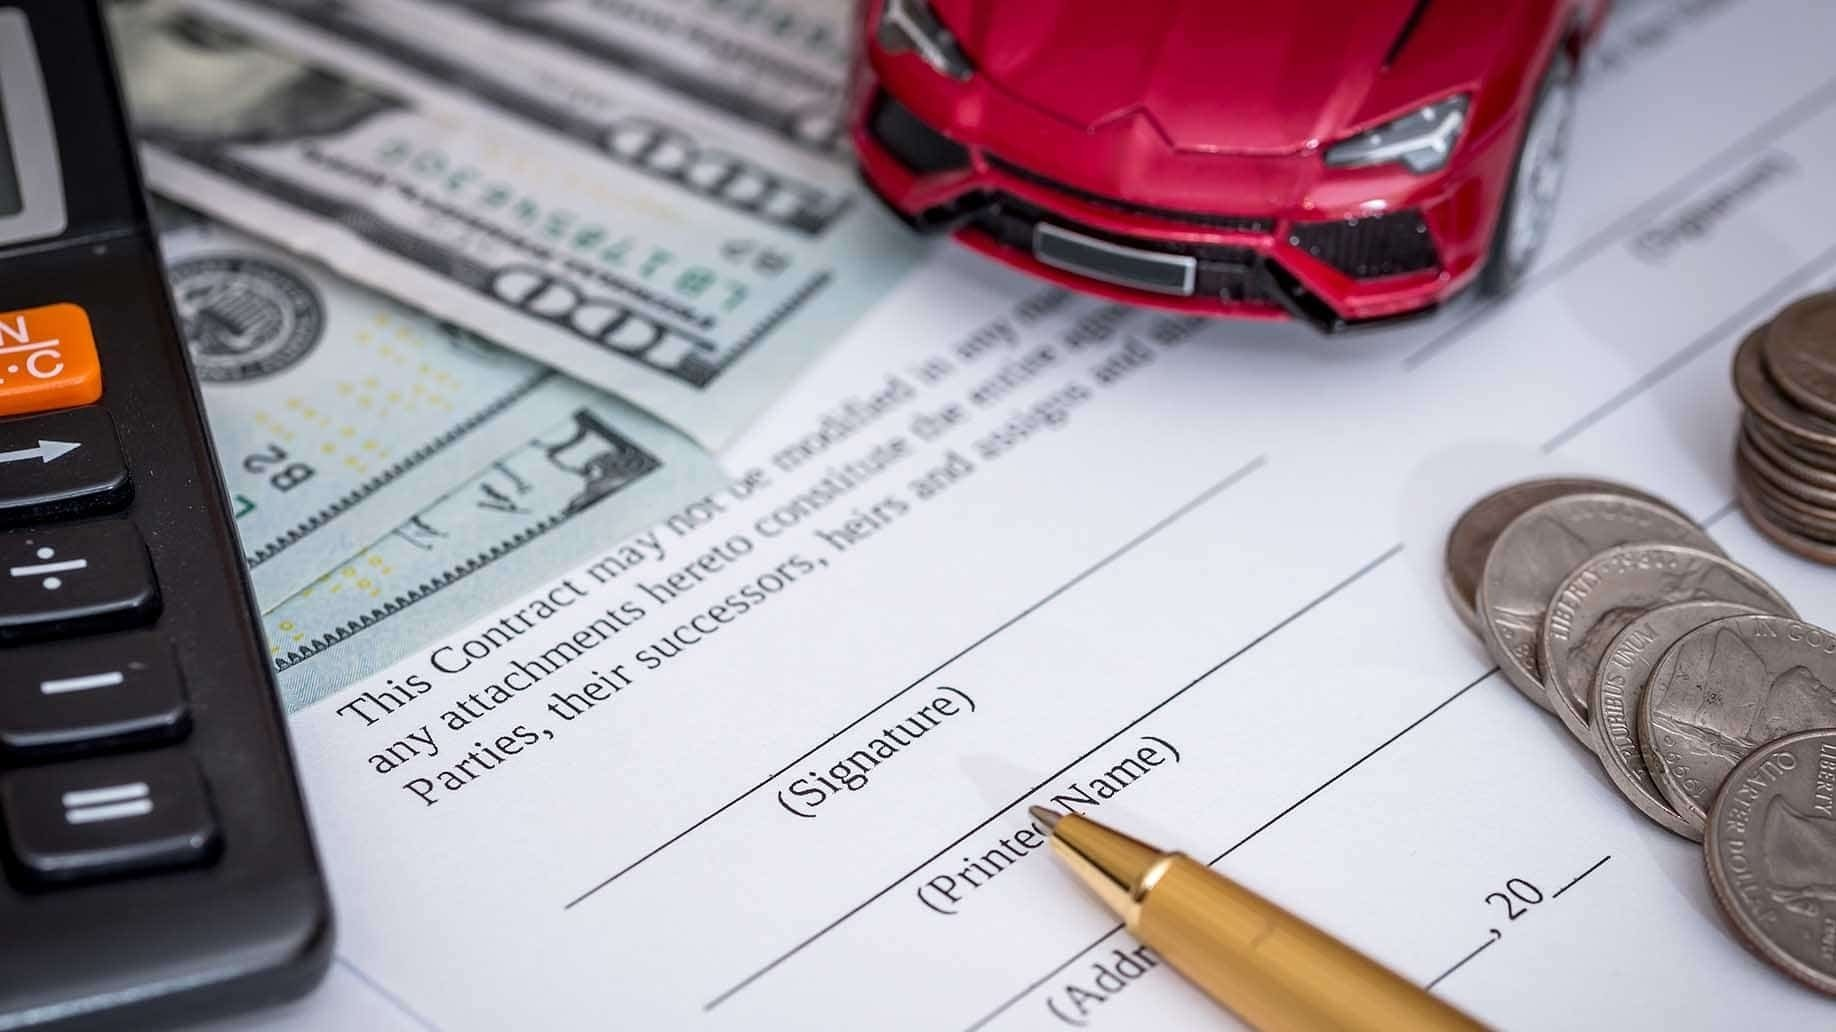 pros & cons of leasing a car vs. buying a car - good or bad idea?